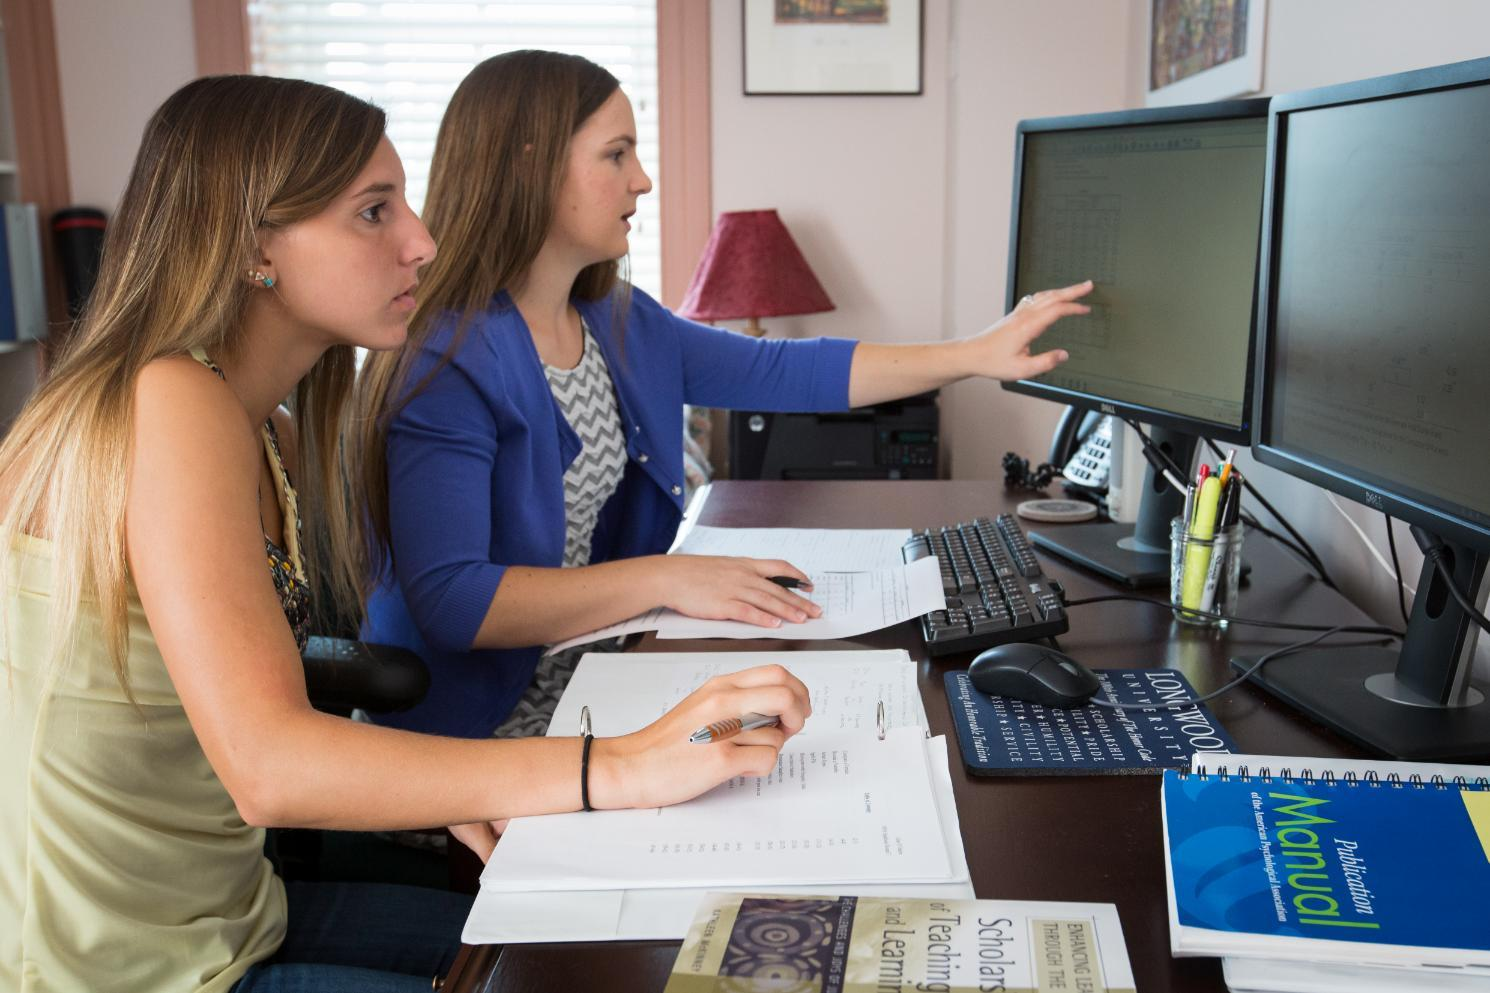 Student Gina D'Orazio '17 (L) and Dr. Sarai Blincoe (R) explore outcomes related to Academic Entitlement as part of the PRISM program